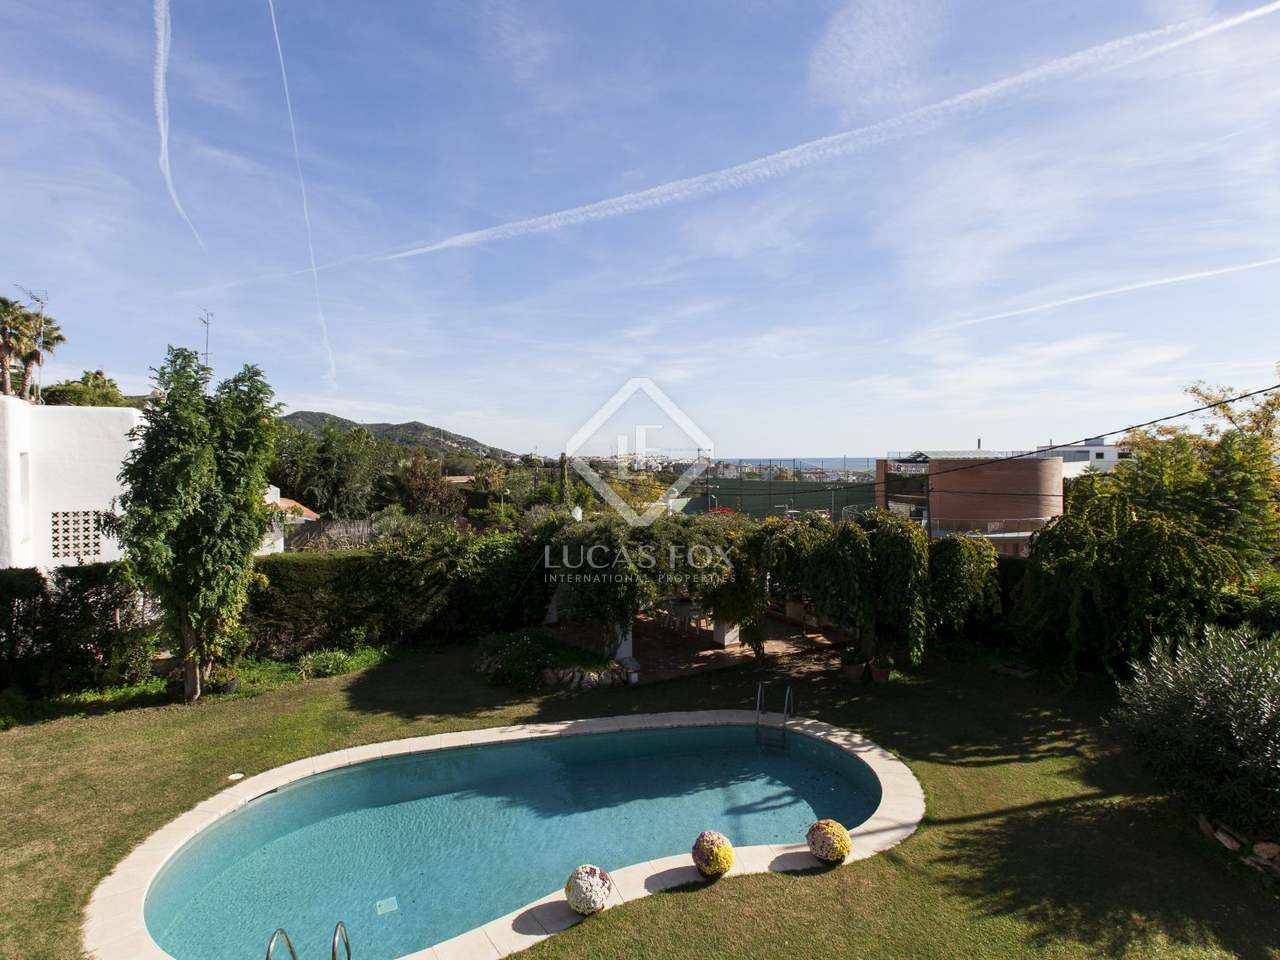 4 bedroom house with garden and pool for sale in vallpineda for Garden pool for sale